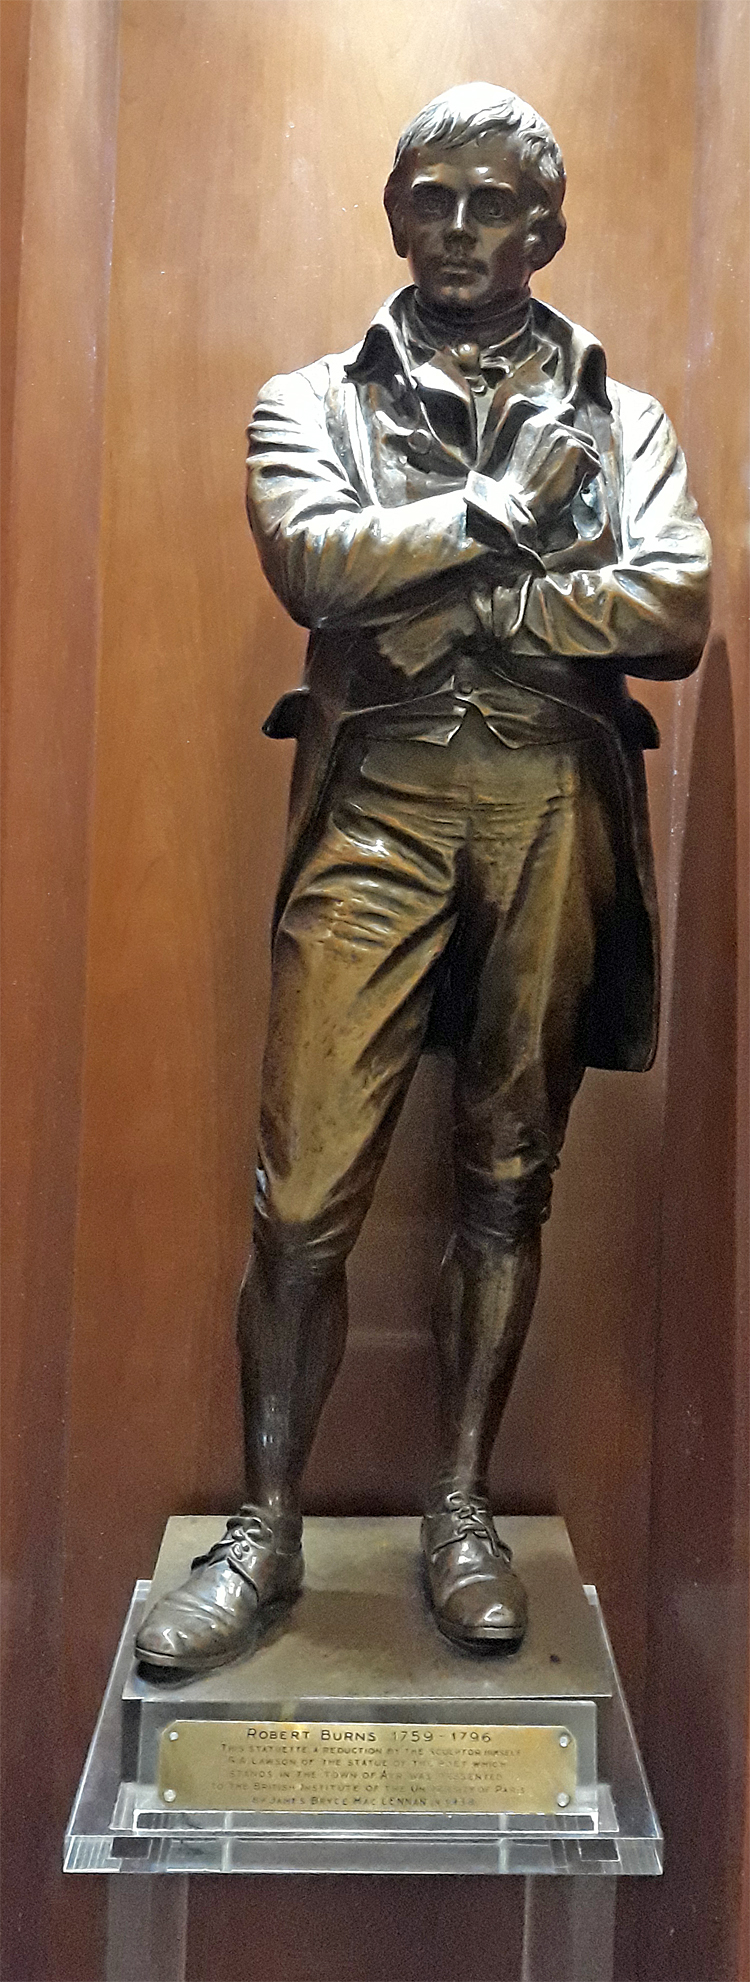 20180122_155930 - Burns Statue at Sorbonne